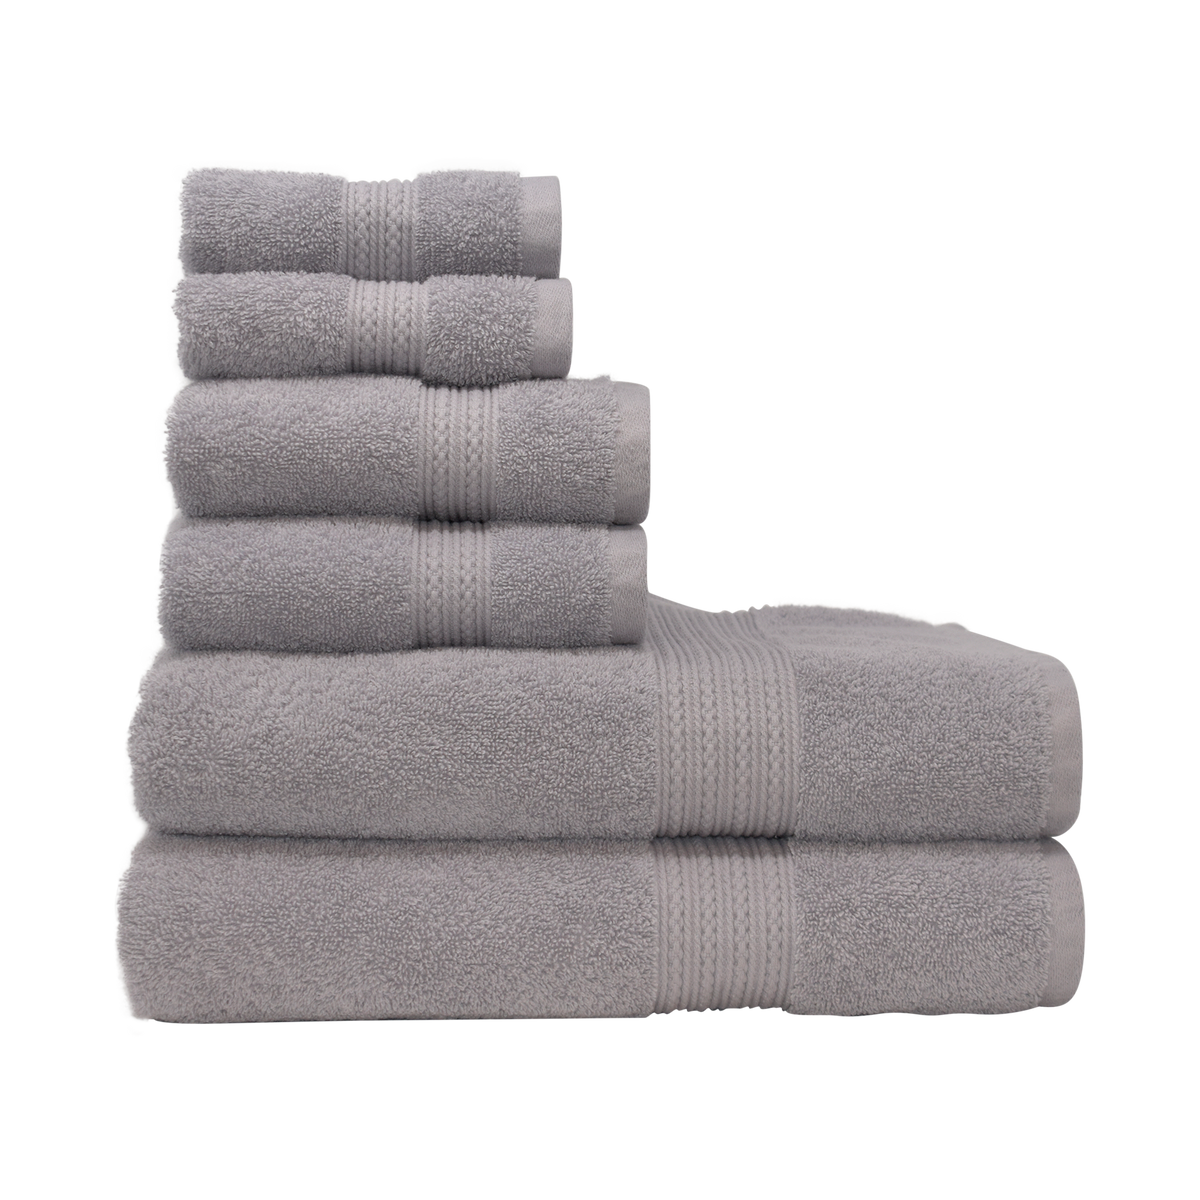 Braid Turkish Towels in Marble Grey Canada